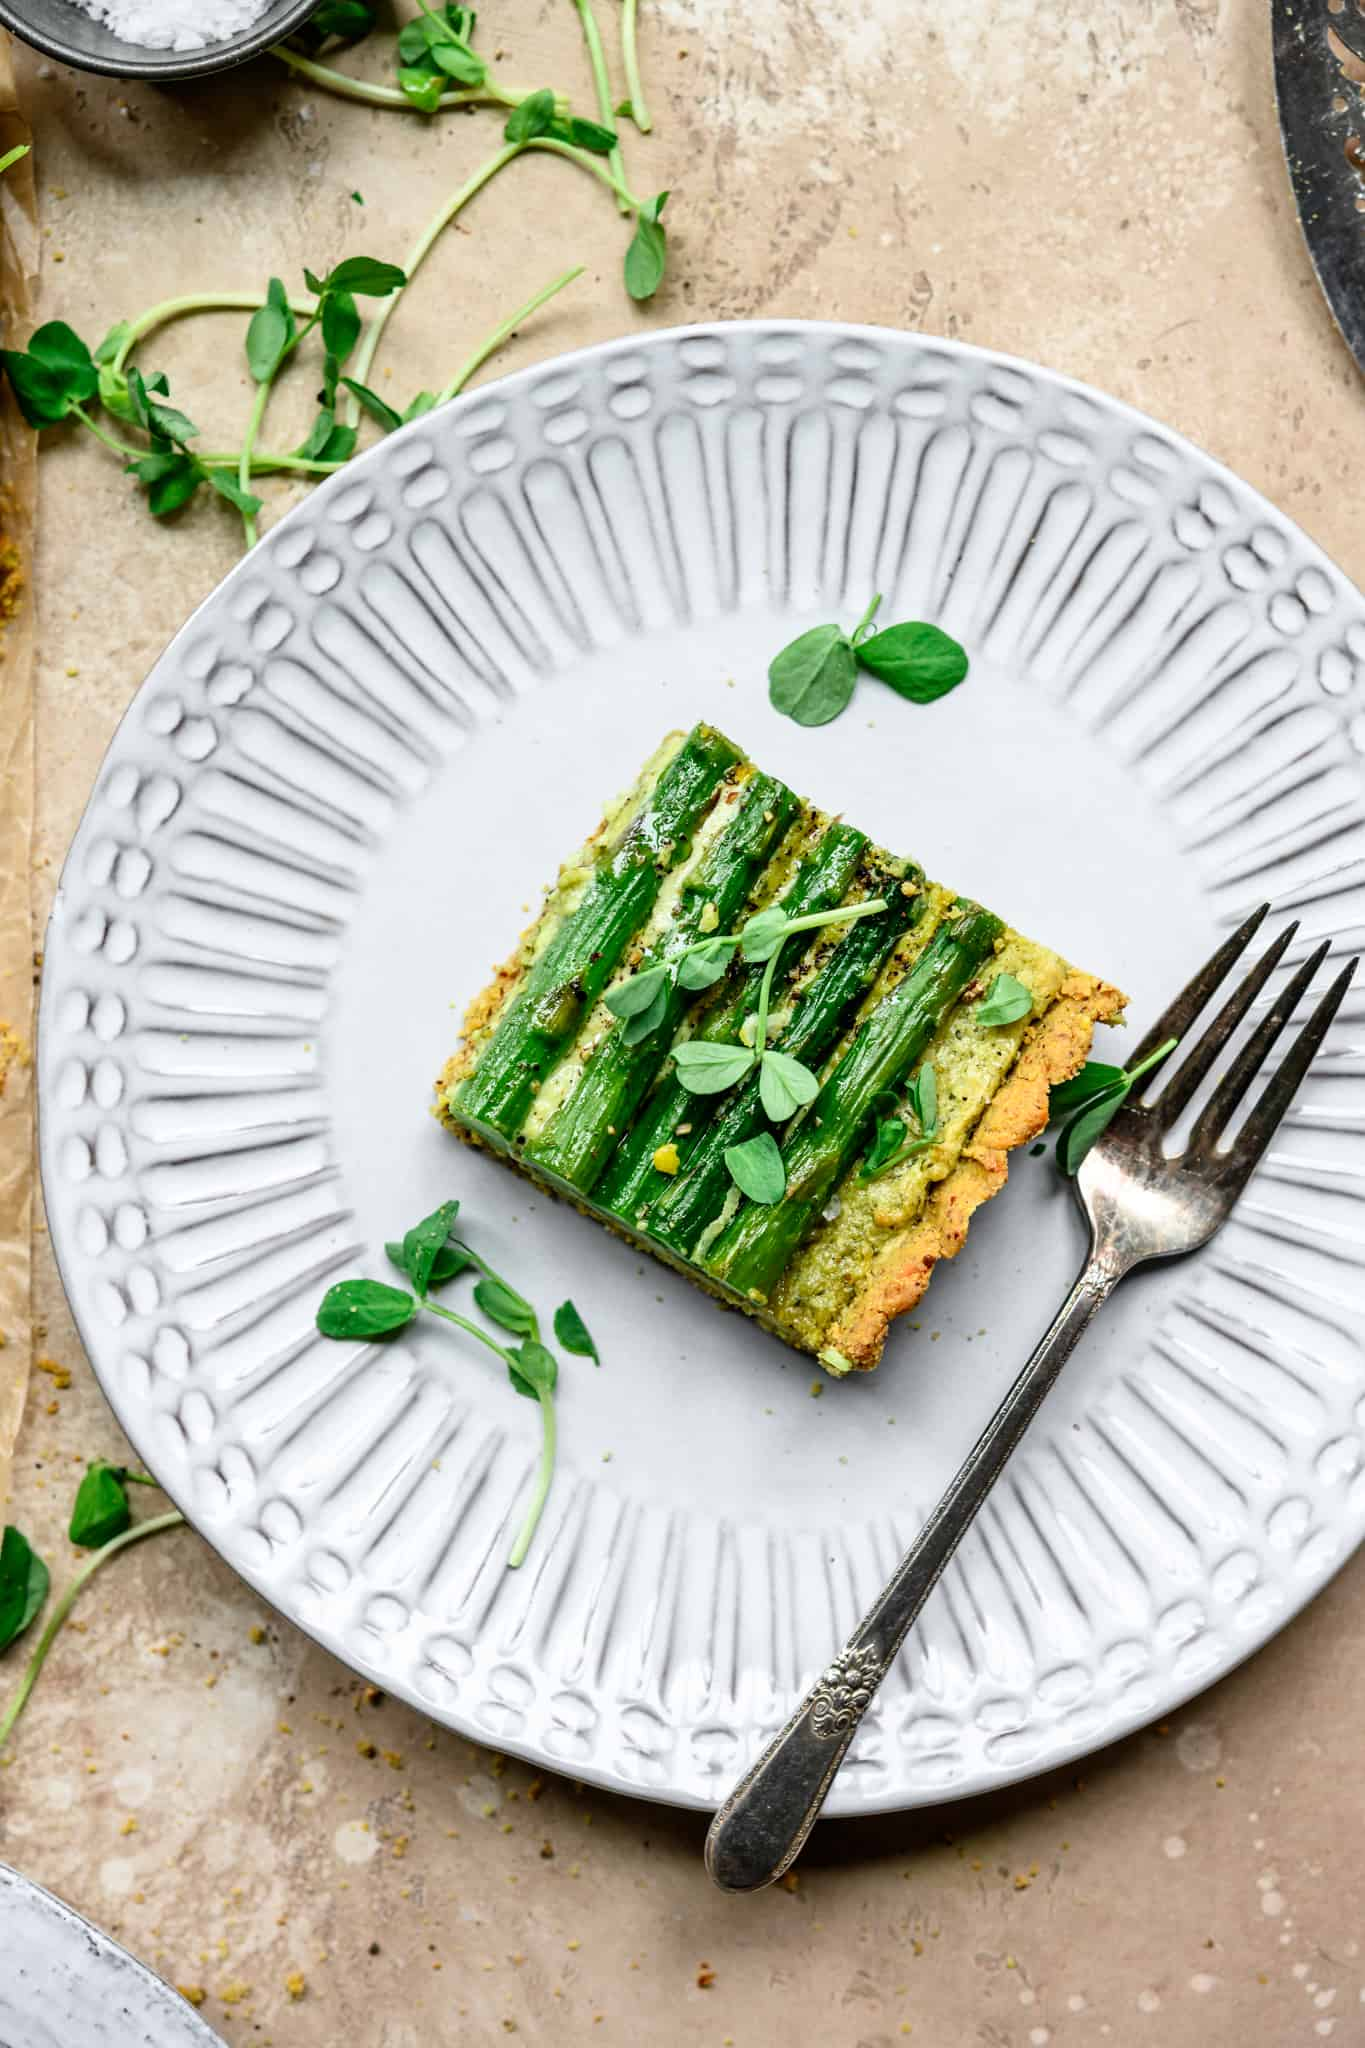 Overhead view of slice of vegan ricotta and asparagus tart on a white plate with fork